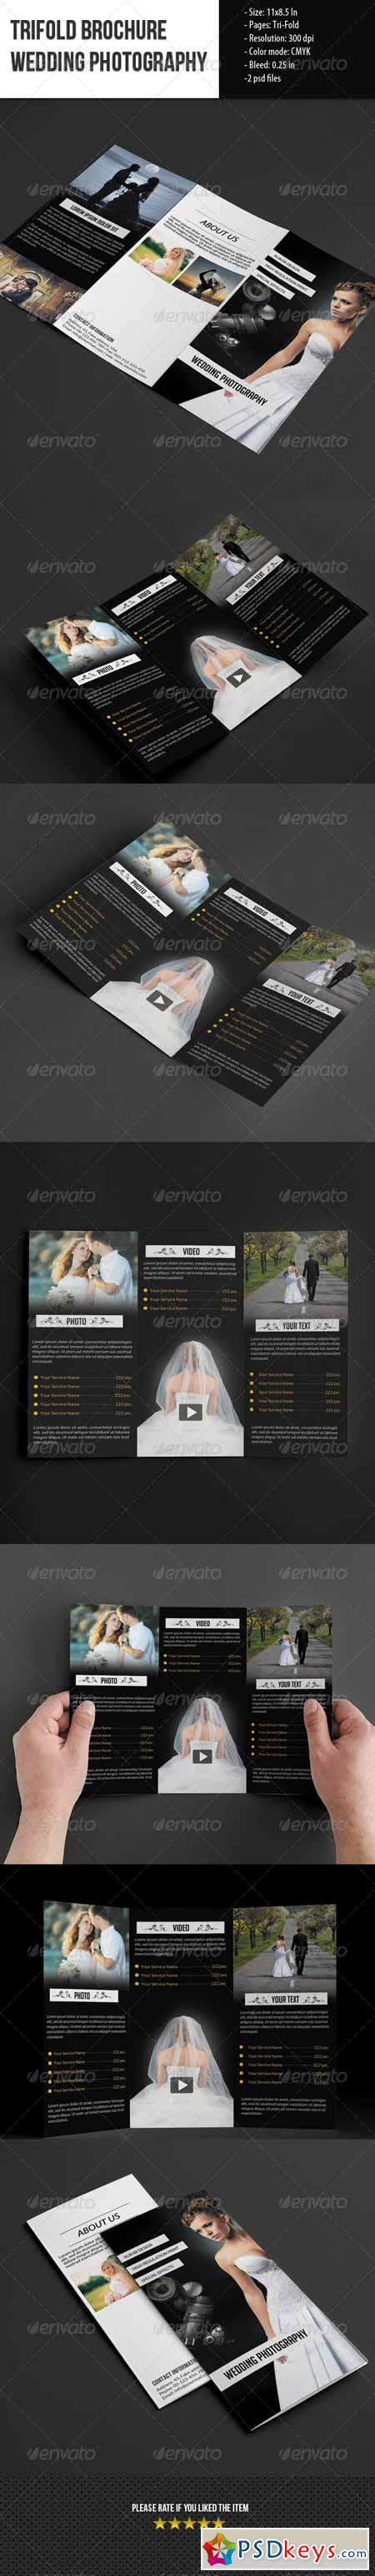 Trifold Brochure for Wedding Photography 5570547